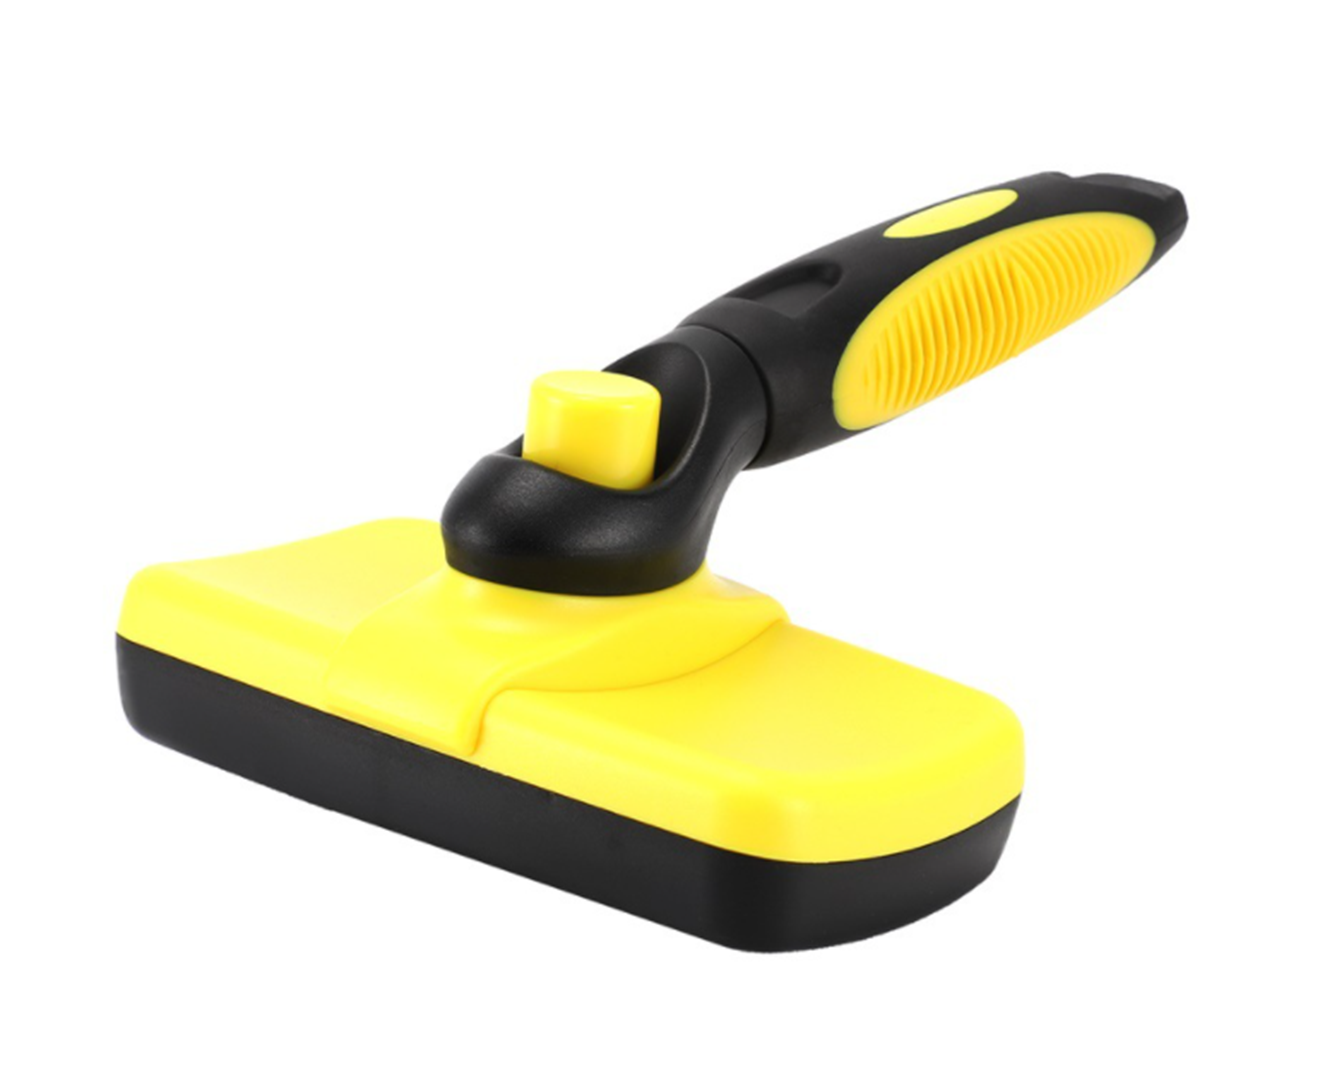 Self Cleaning Brush - Pet Grooming Tool Removes Loose Undercoat, Easy to Comb for Dogs and Cats with Long or Short Hair-YELLOW